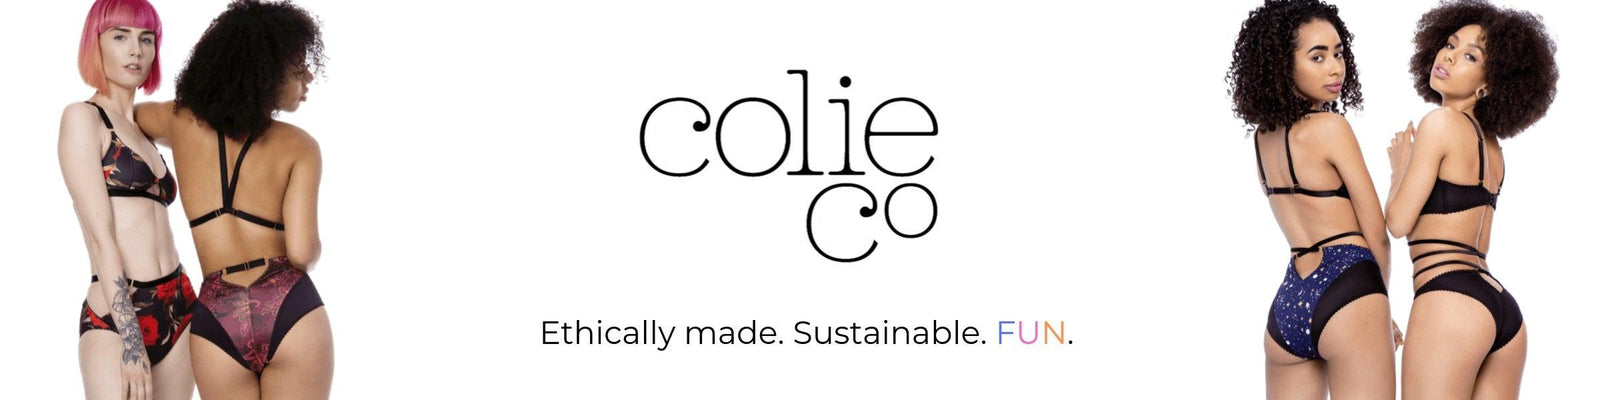 ColieCo Lingerie. Ethical. Sustainable. FUN.